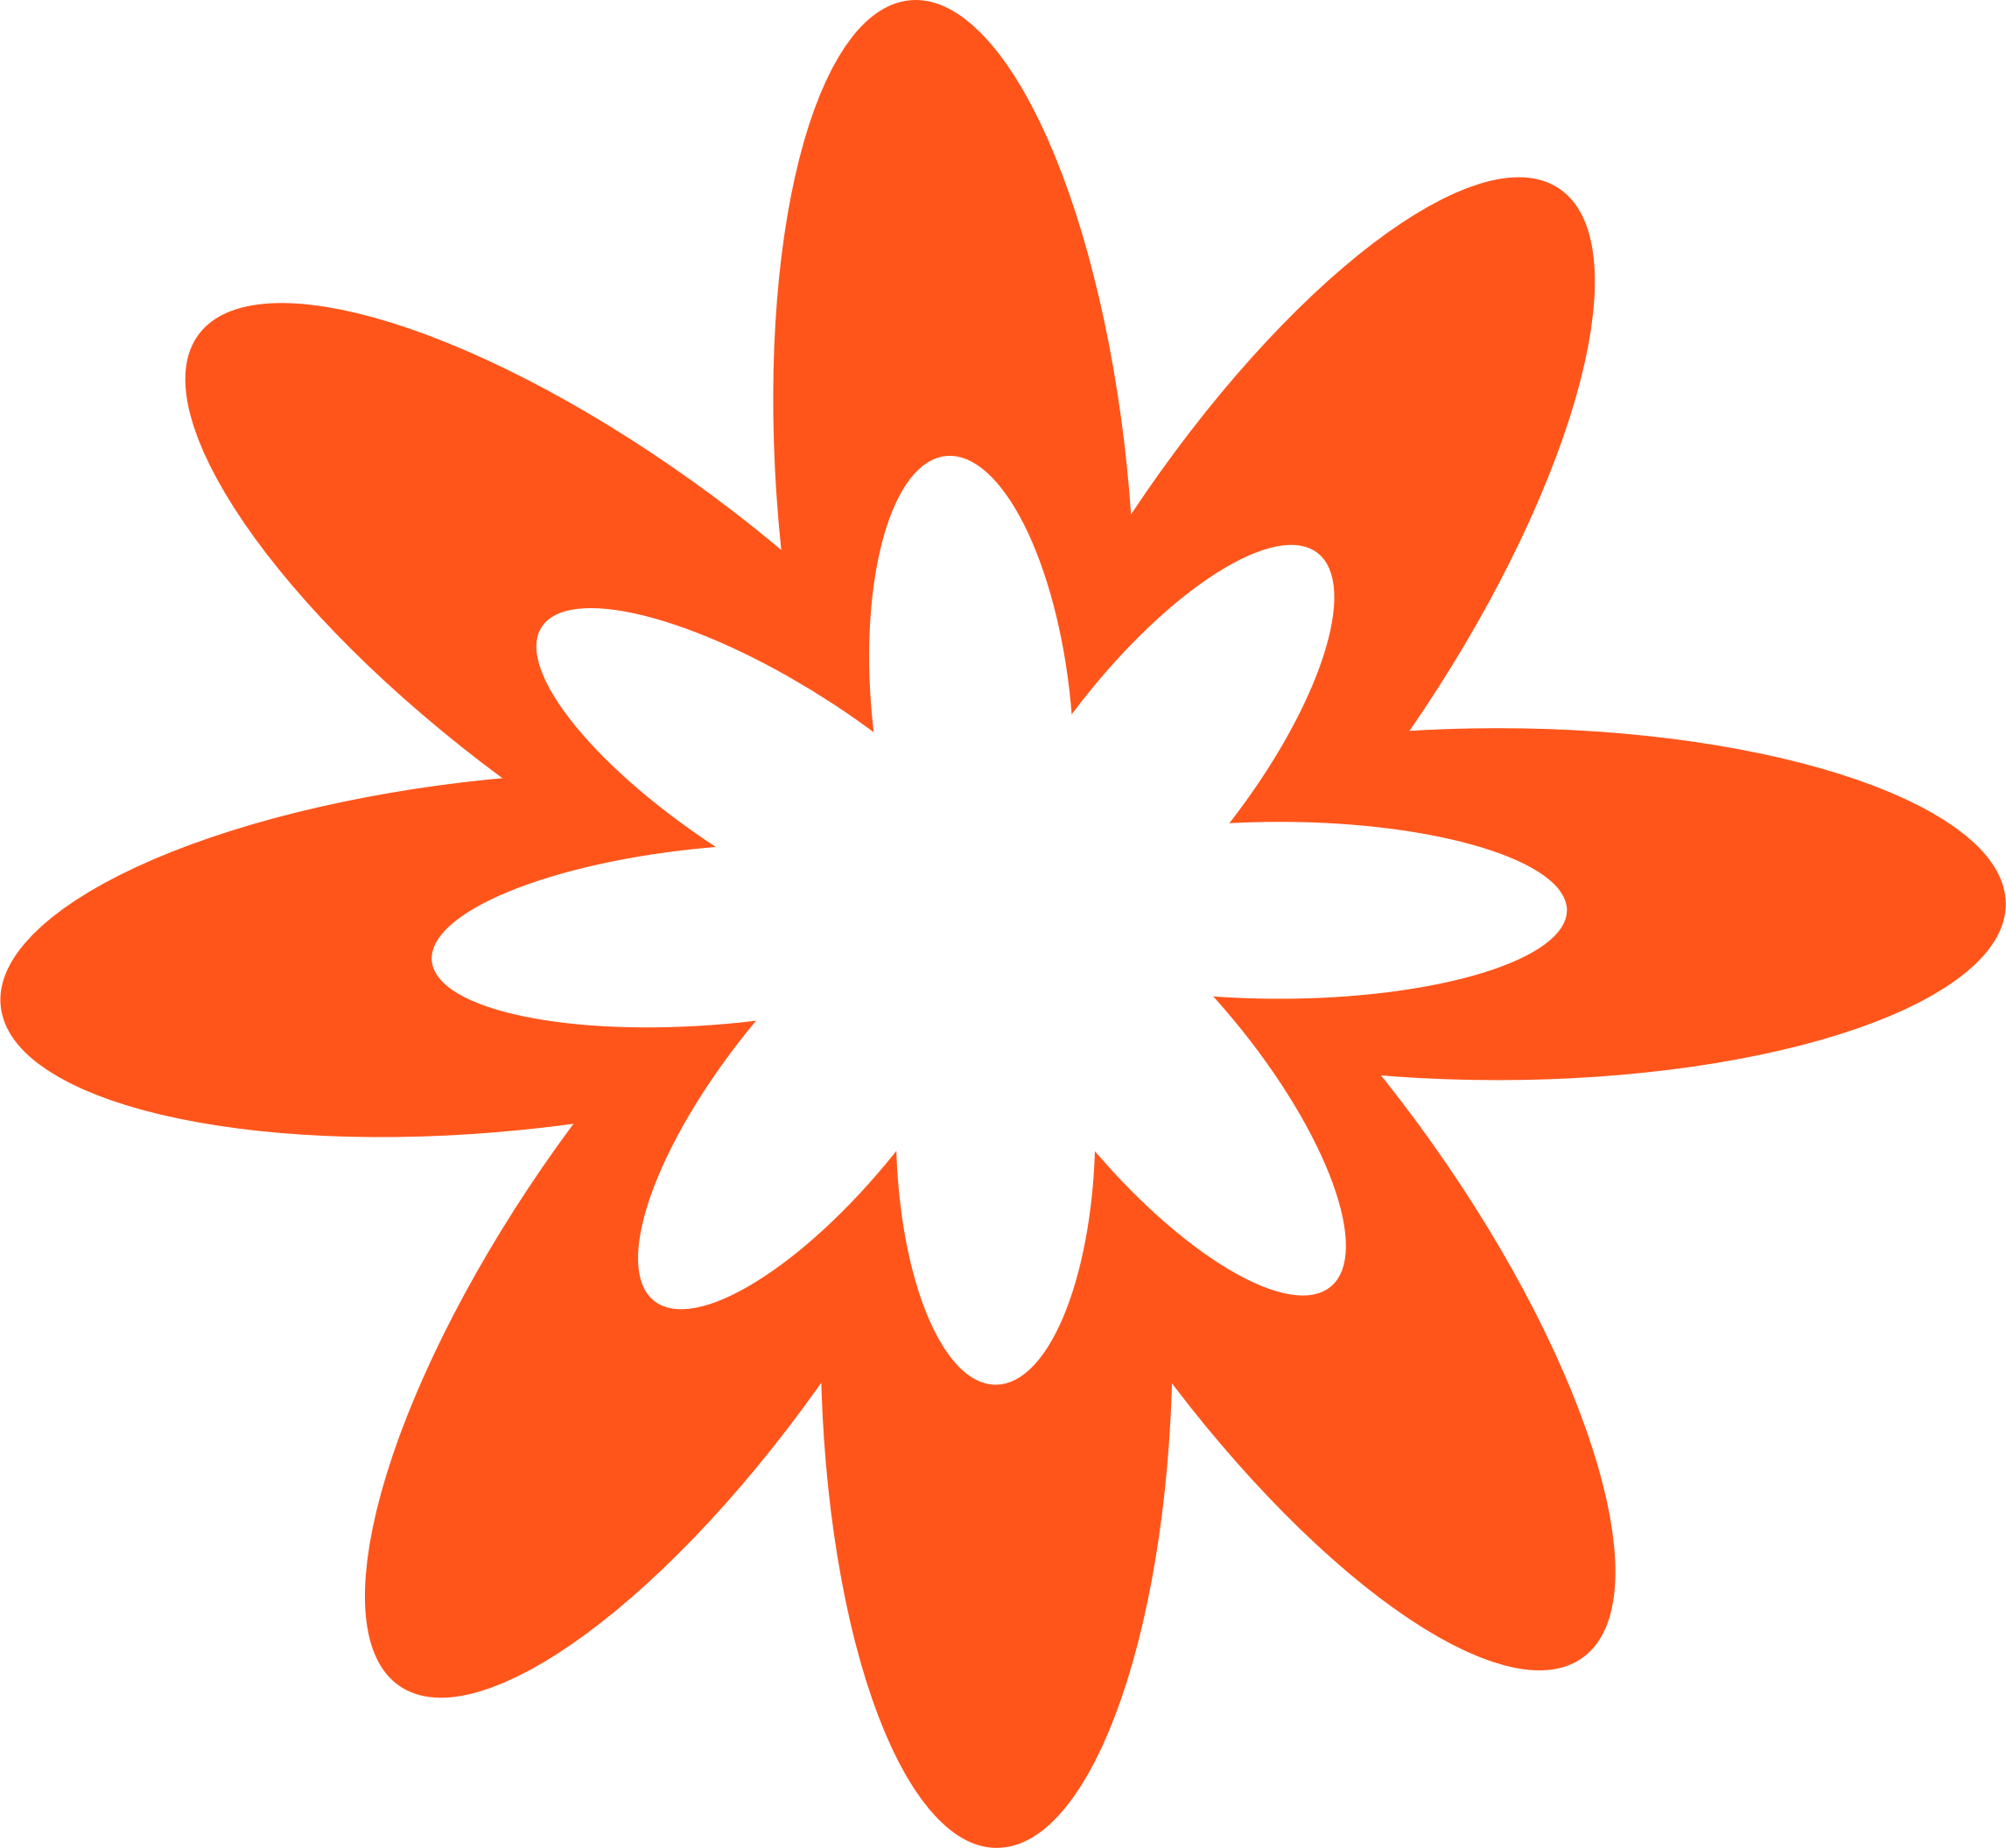 Flower clipart orange clipart freeuse library Clipart - Dark Orange Burst Flower clipart freeuse library